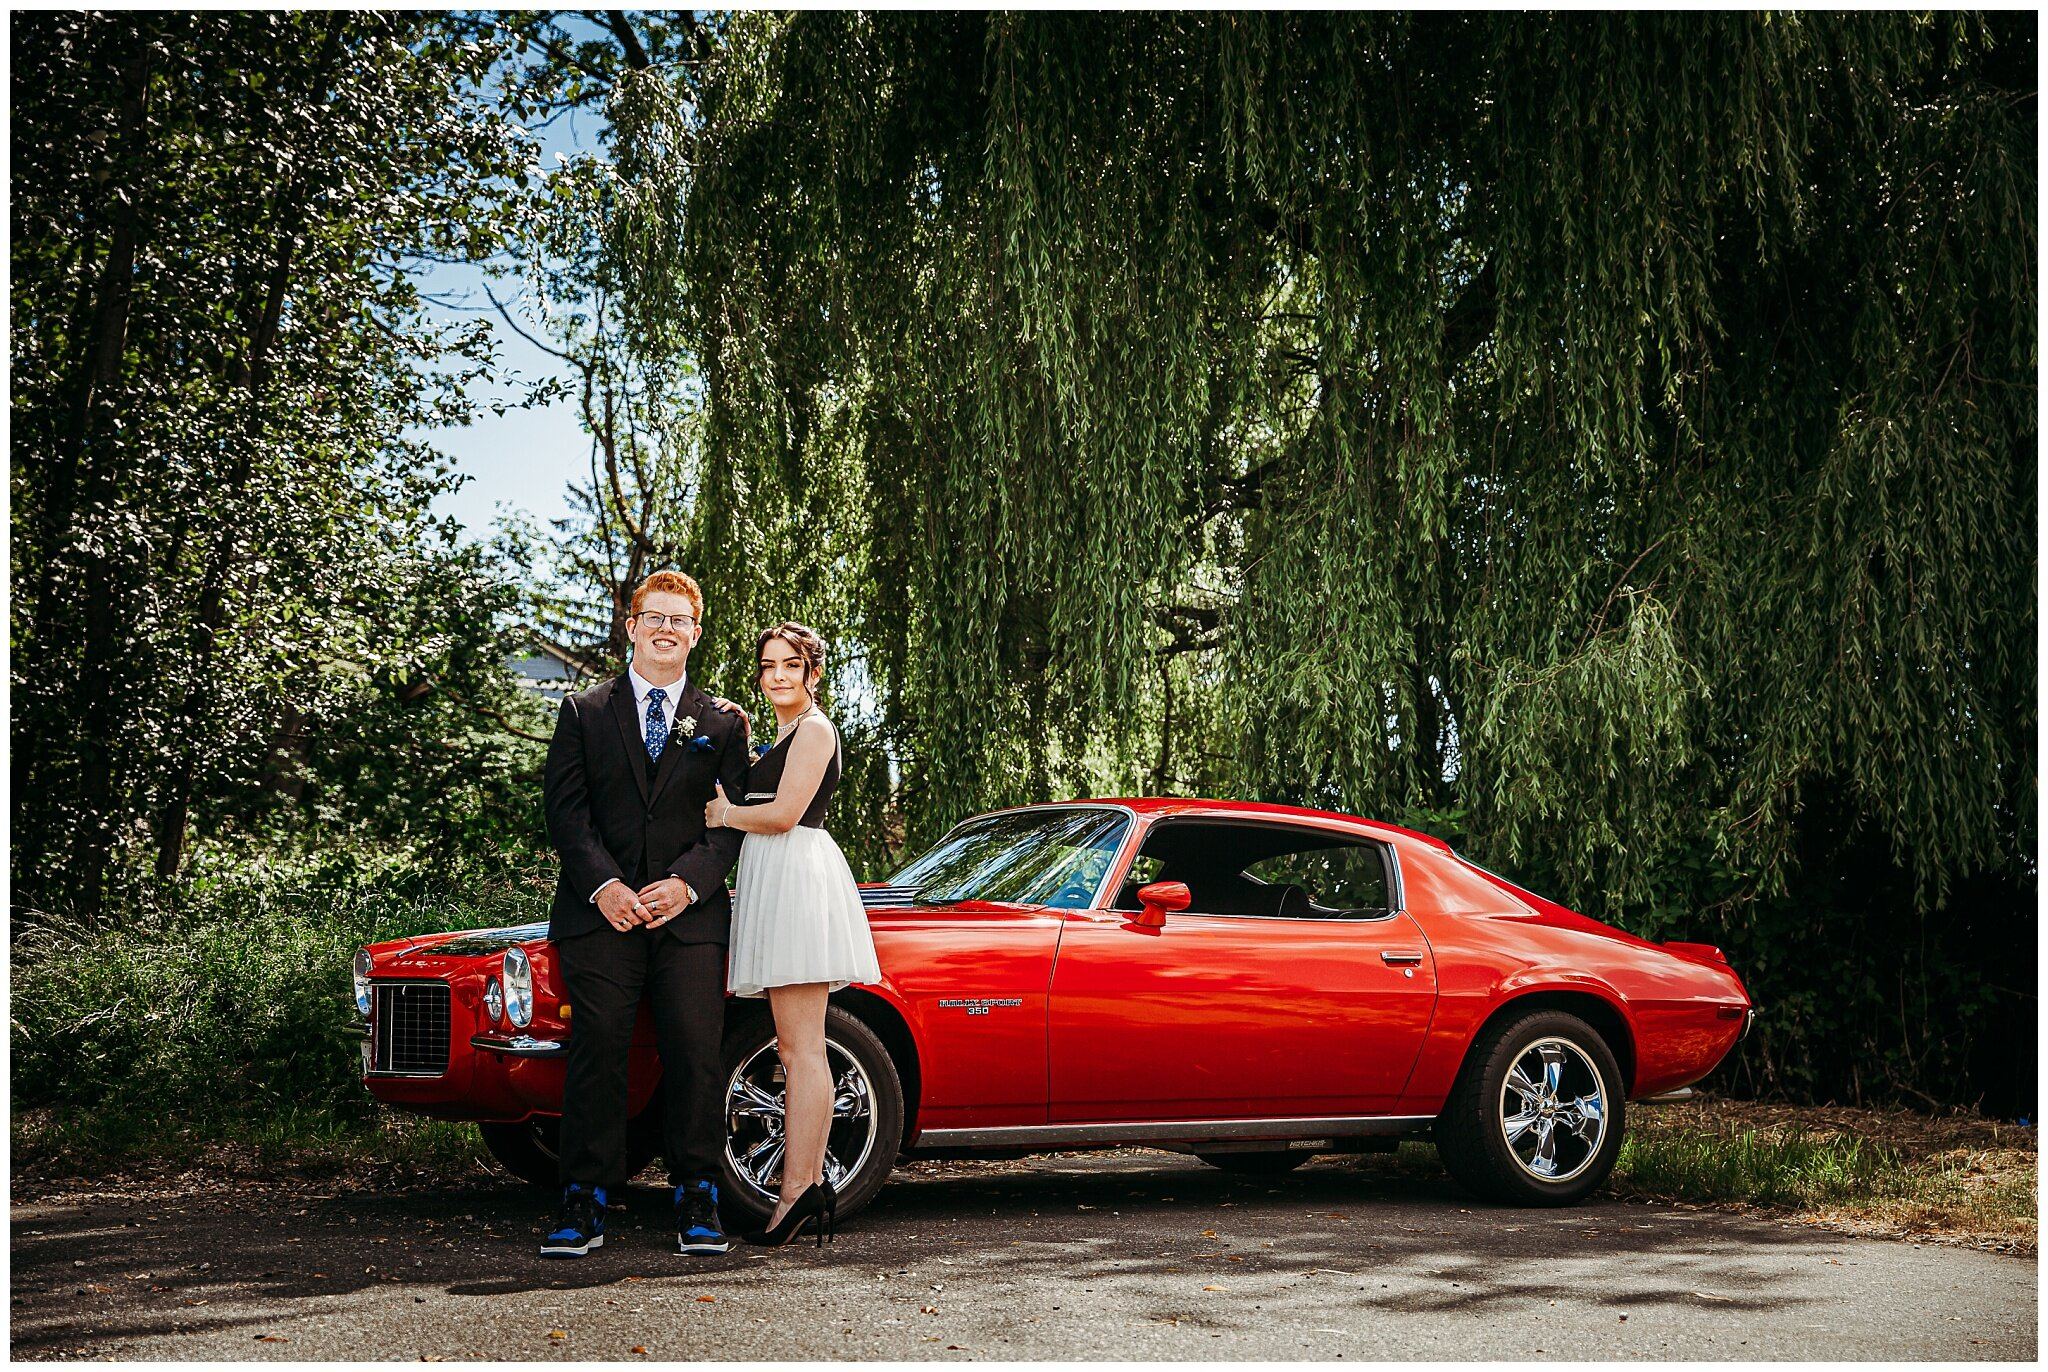 Chilliwack Highschool Prom Graduation Photographer 2019 Abbotsford fun bright_0021.jpg